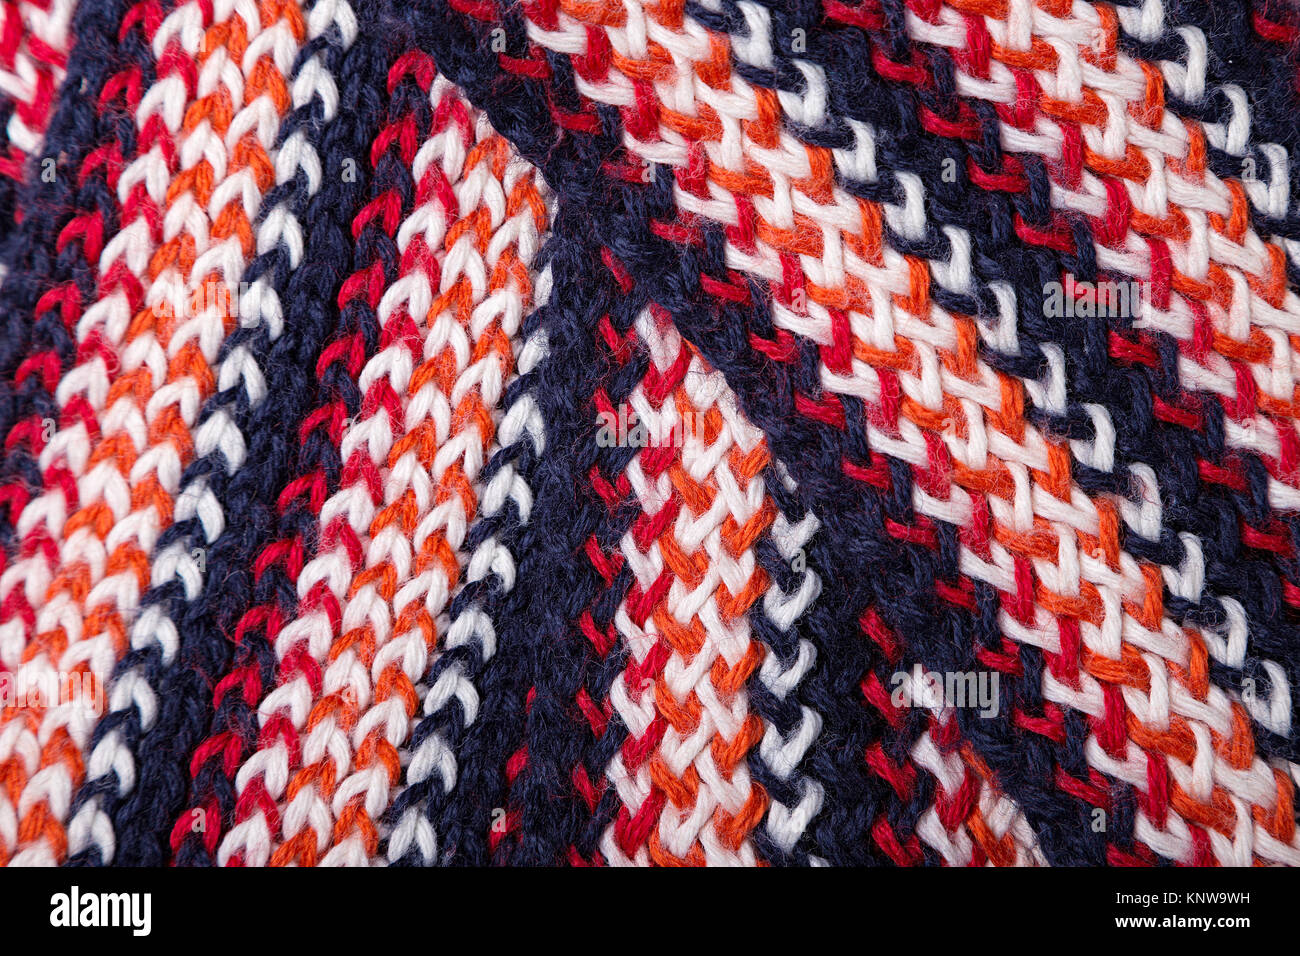 Knitted Wool Vector Background Stockfotos & Knitted Wool Vector ...